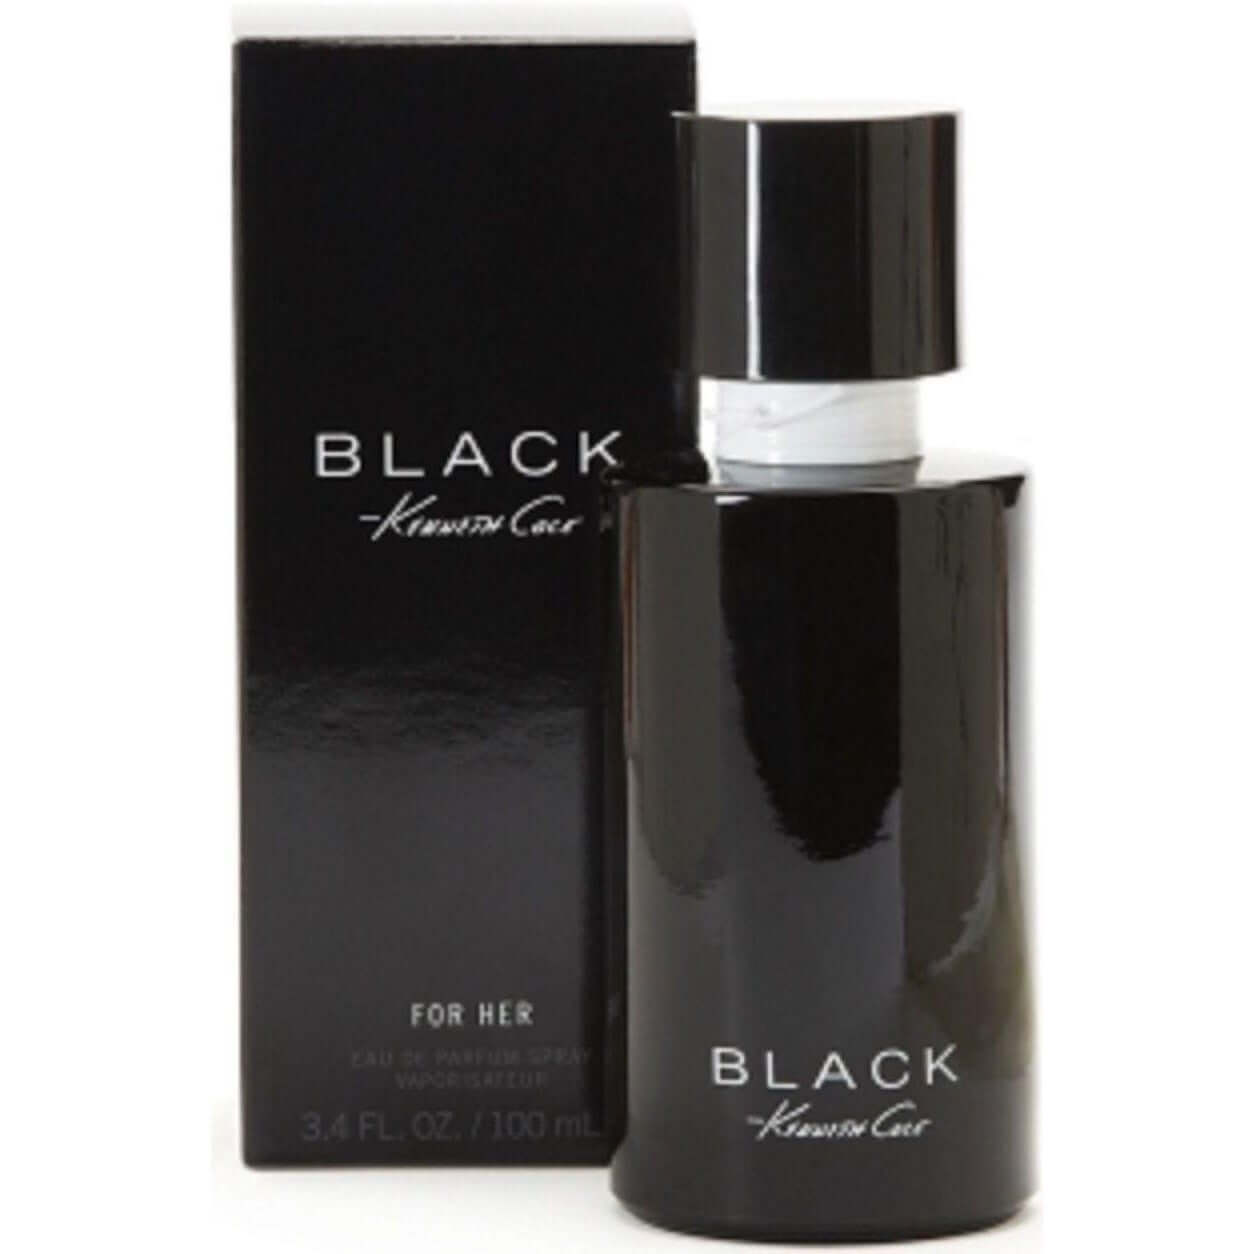 black-kenneth-cole-perfume-3-4-3-3-oz-edp-women-brand-new-in-box